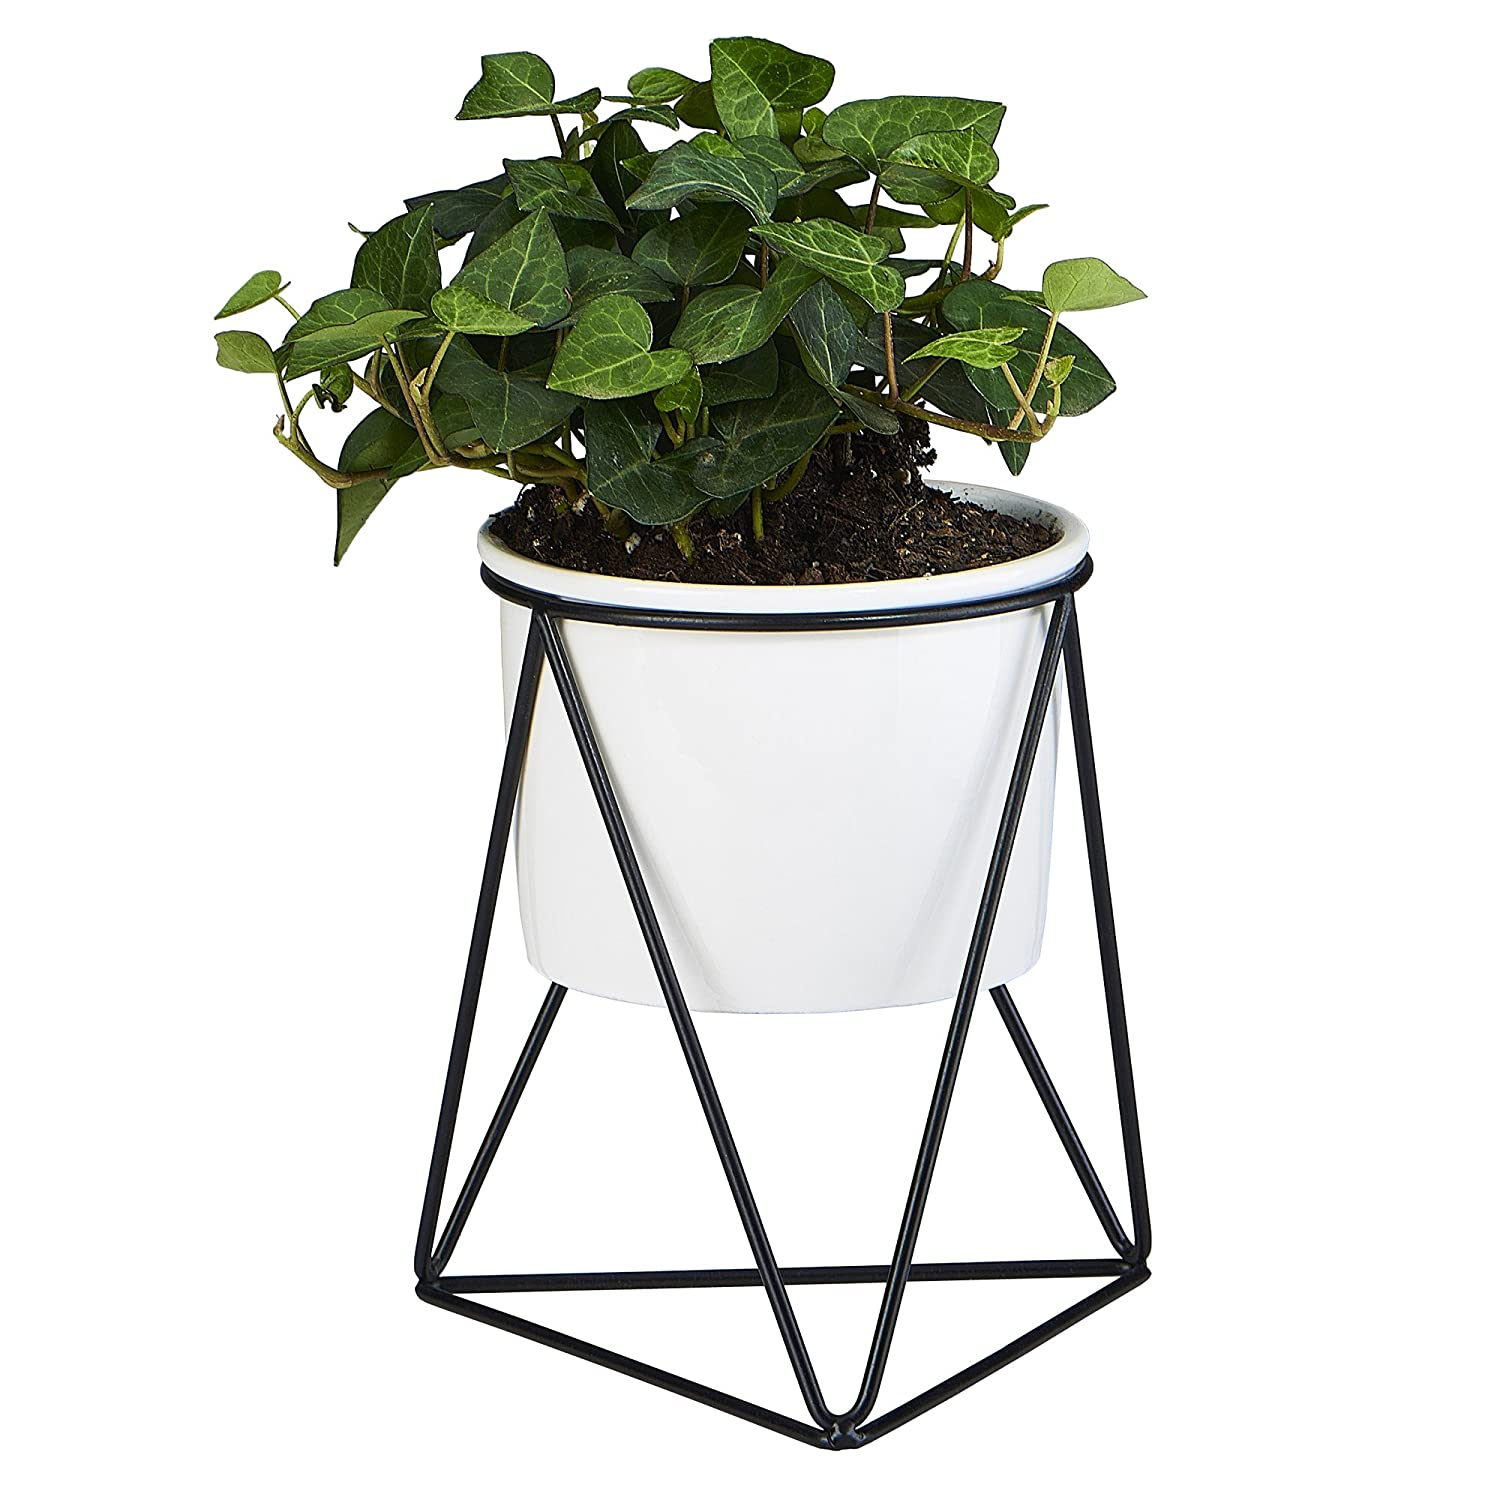 Planter Pot Indoor, Flowerplus 4.33 Inch White Ceramic Medium Succulent Cactus Flower Plant Round Bowl with Metal Stand Holder and Plants Sign for Indoors Outdoor Home Garden Kitchen Decor (Black)